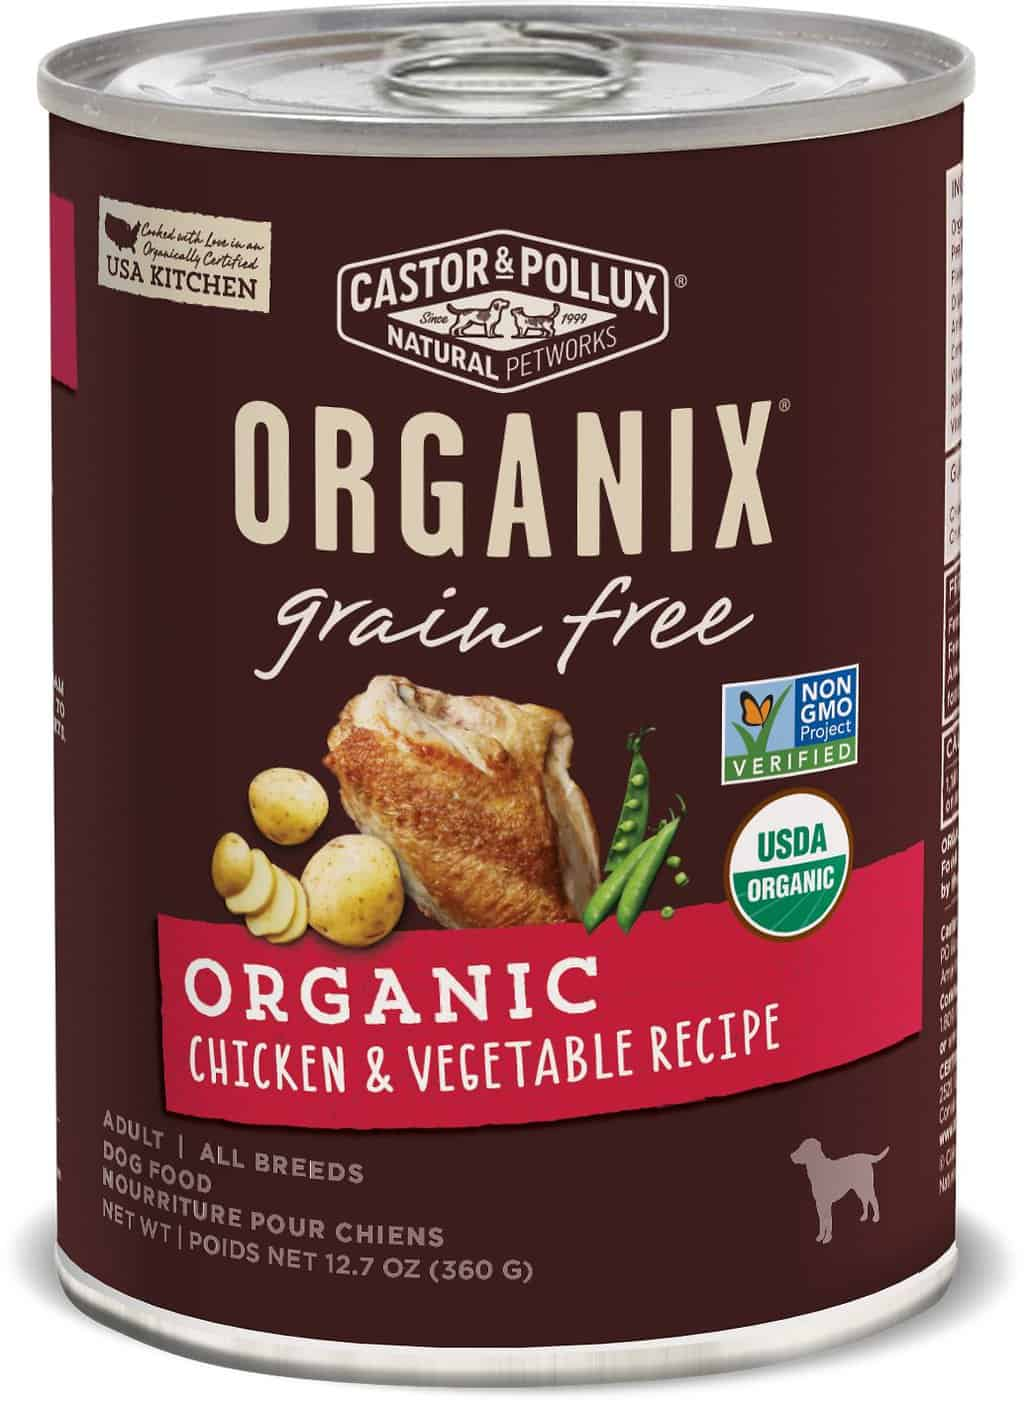 Castor and Pollux Dog Food: 2021 Review, Recalls & Coupons 14